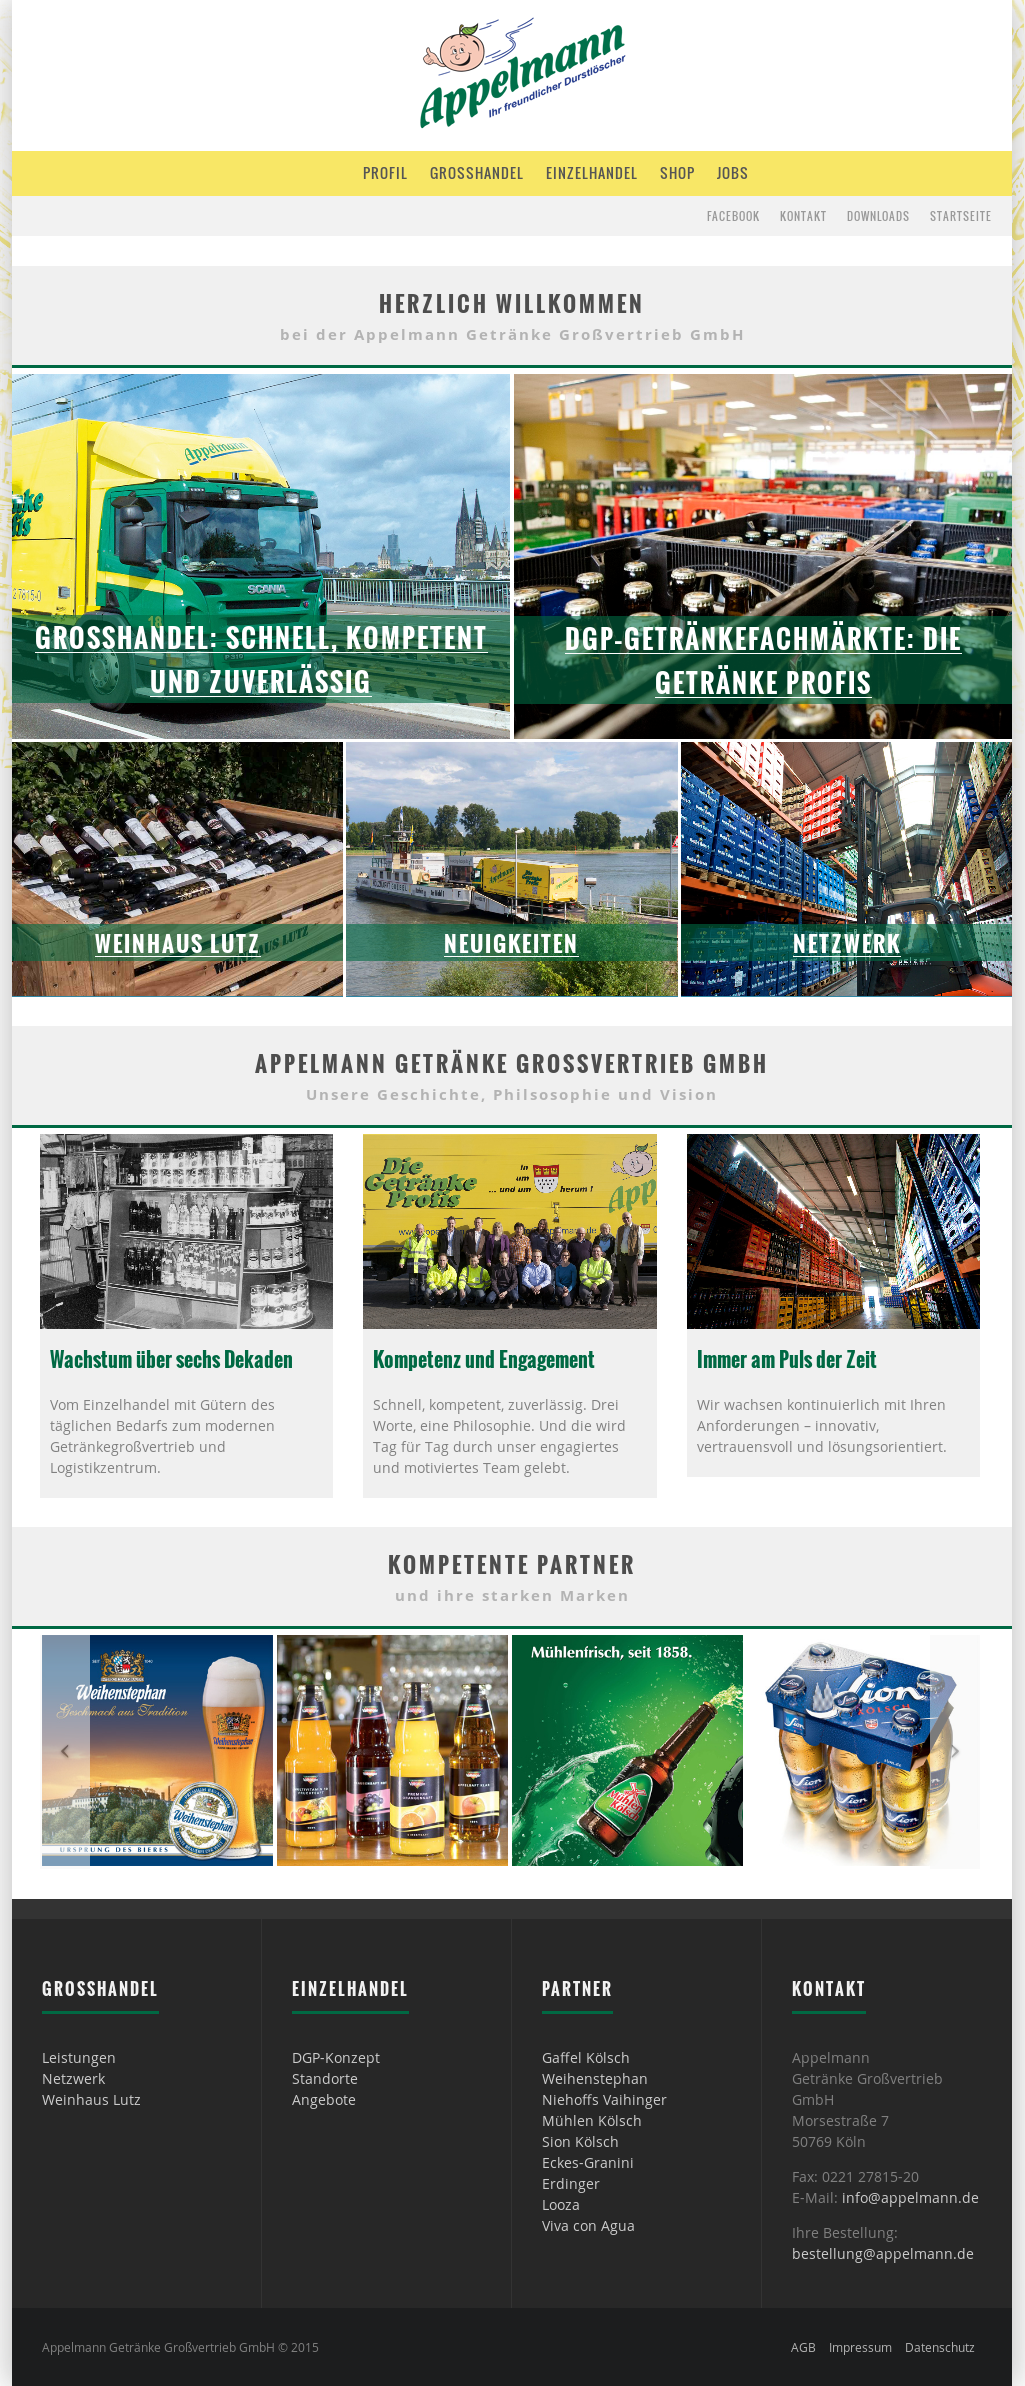 Appelmann Getraenke Grossvertrieb Competitors, Revenue and Employees ...